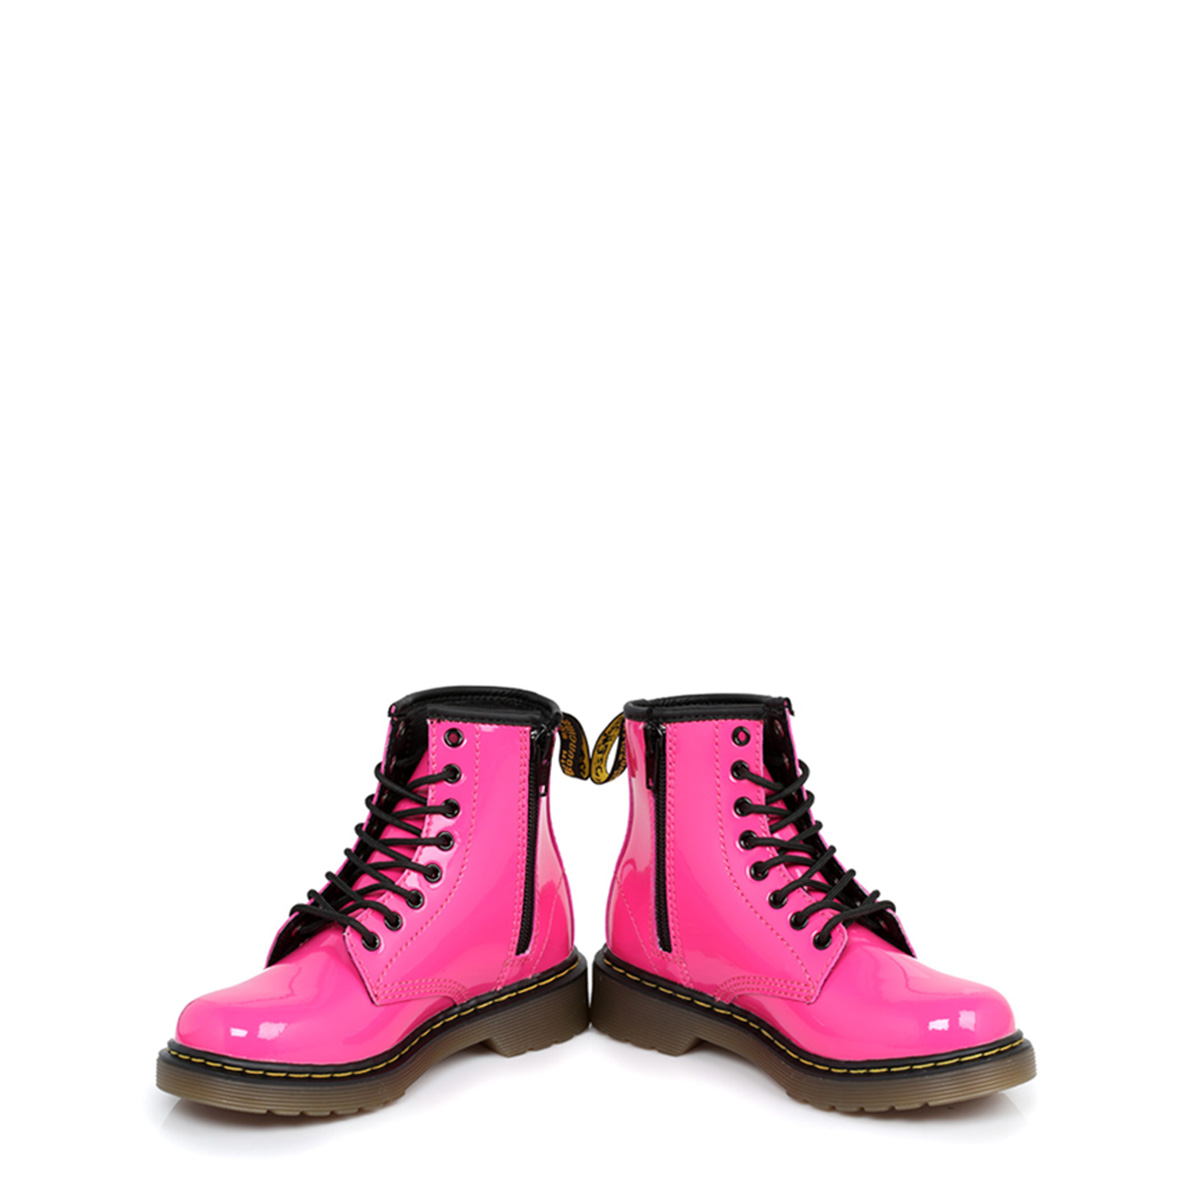 0dbf2ccf43 Dr. Martens Girls Kids Docs Boots Delaney Pink Leather Lace Up Ankle ...